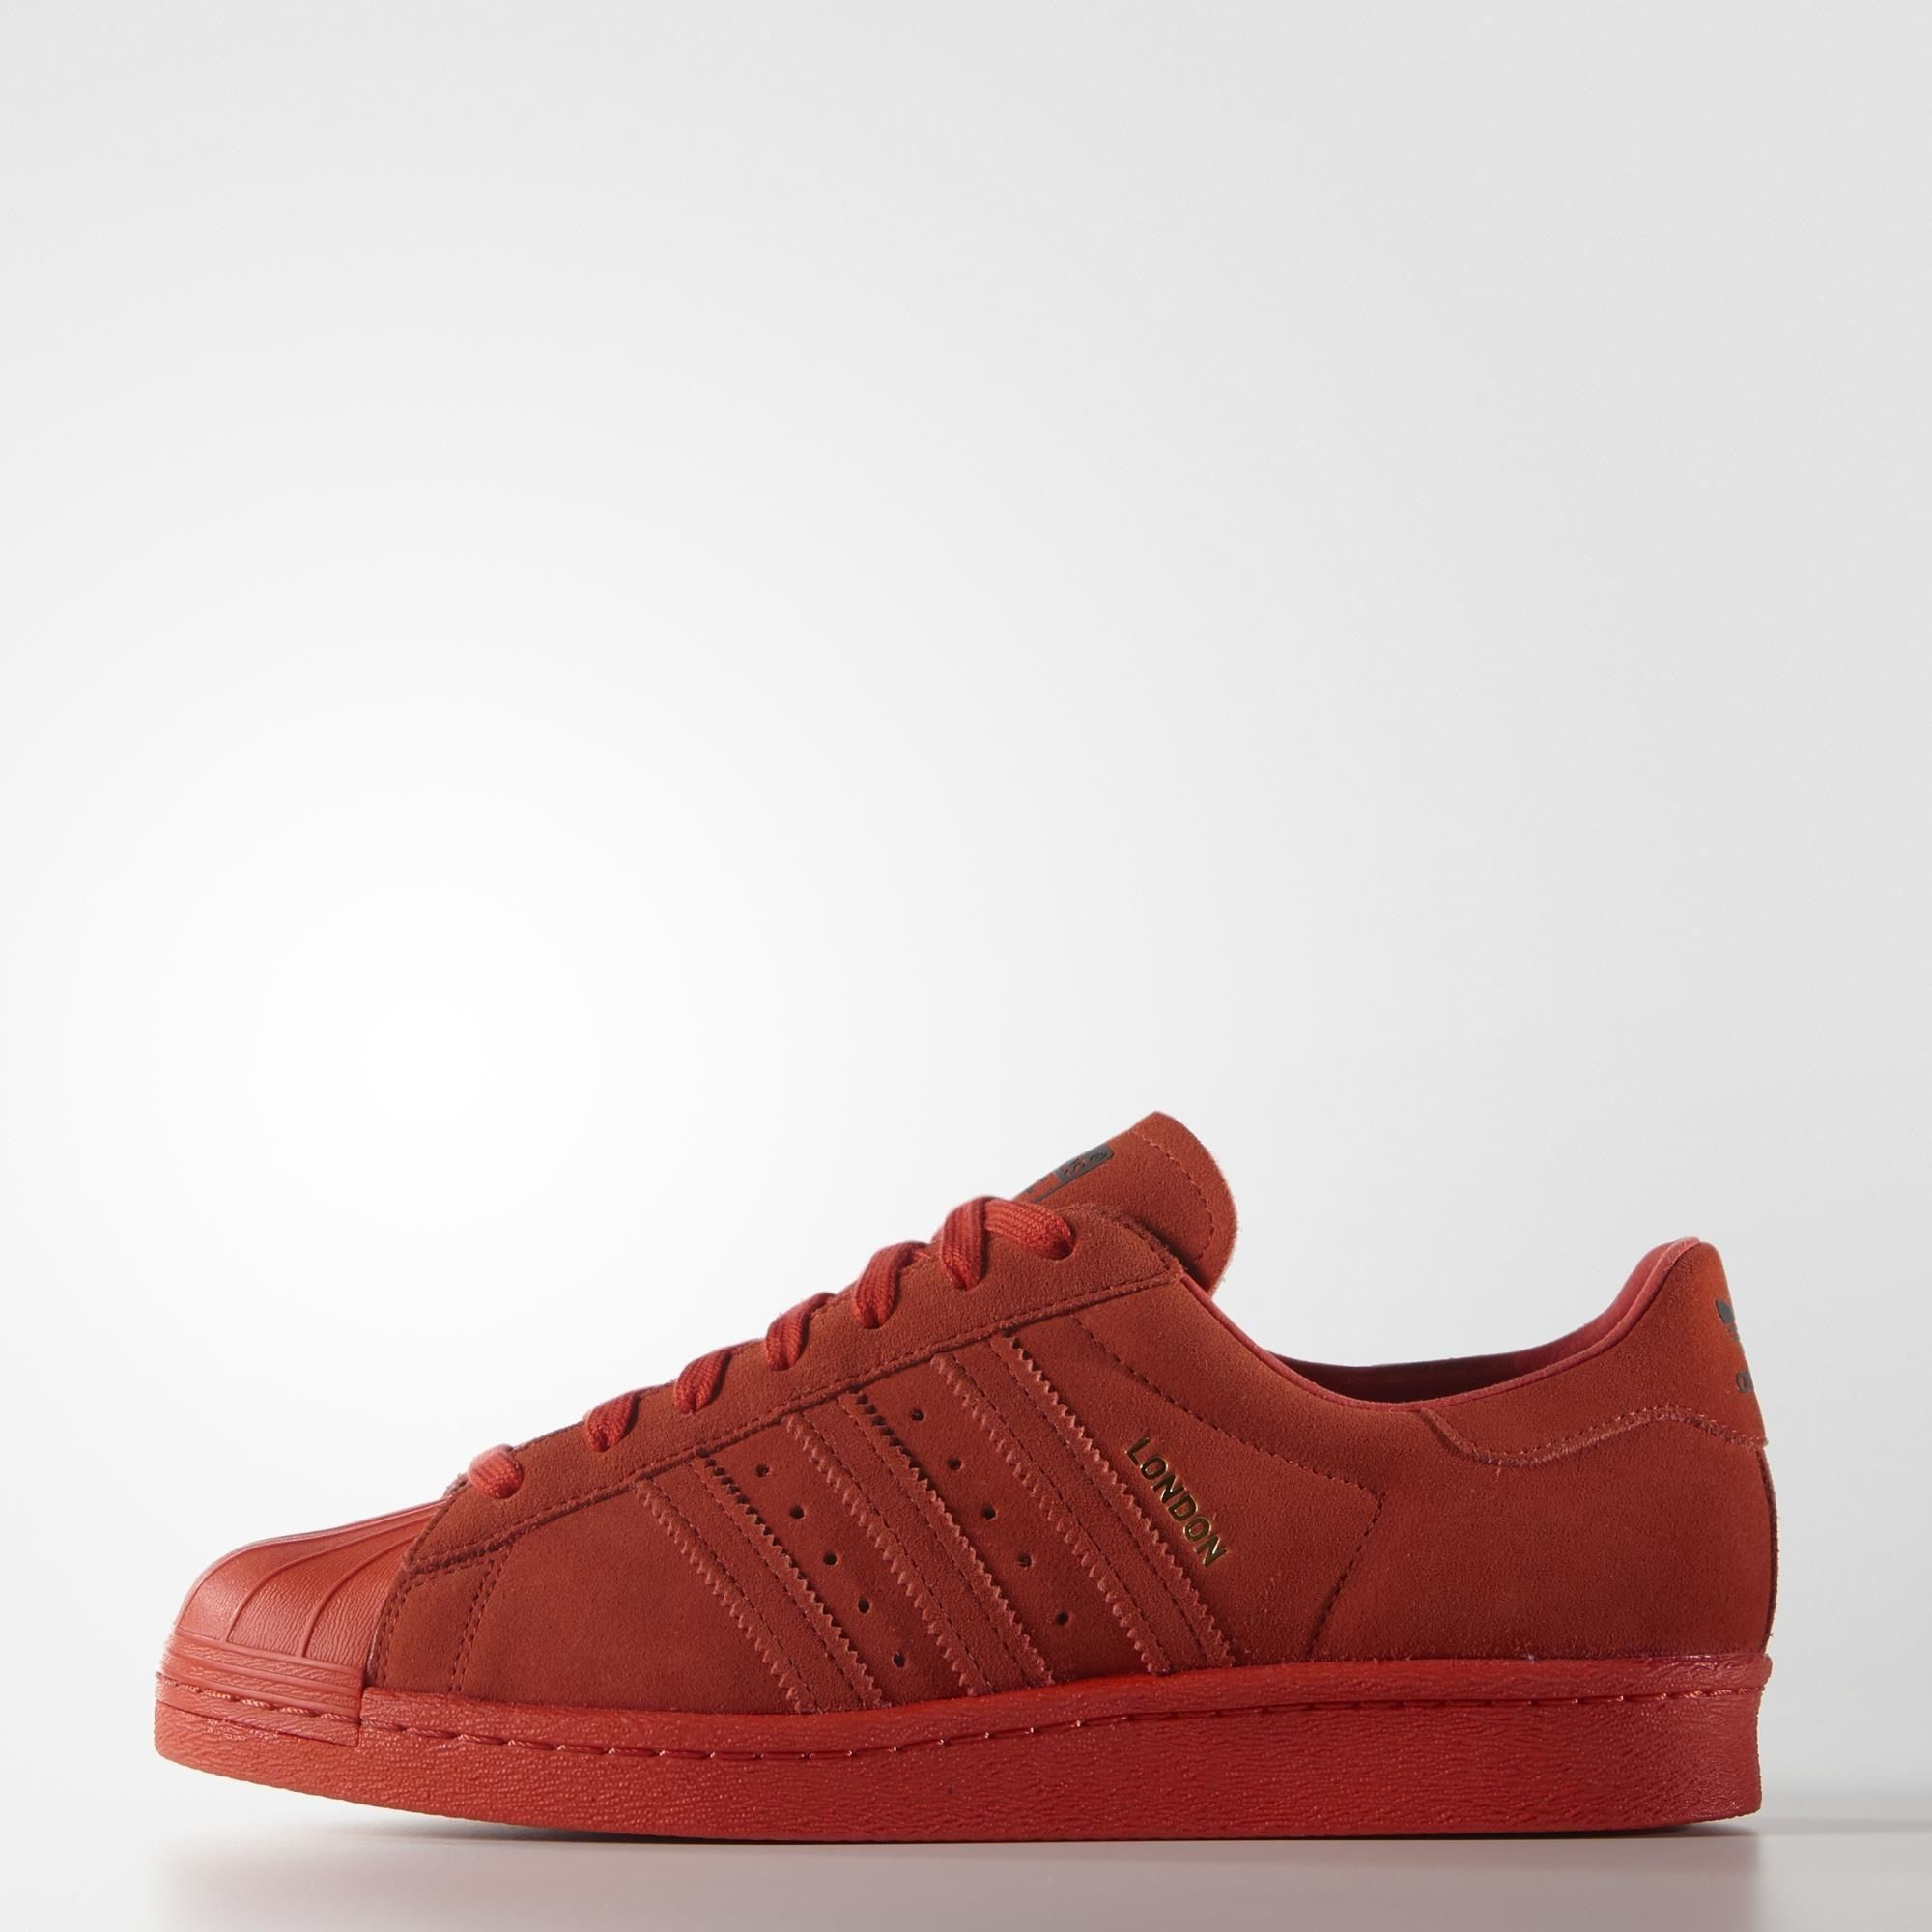 Adidas Superstar Superstar 80s City Series Shoes Shoes Shoes